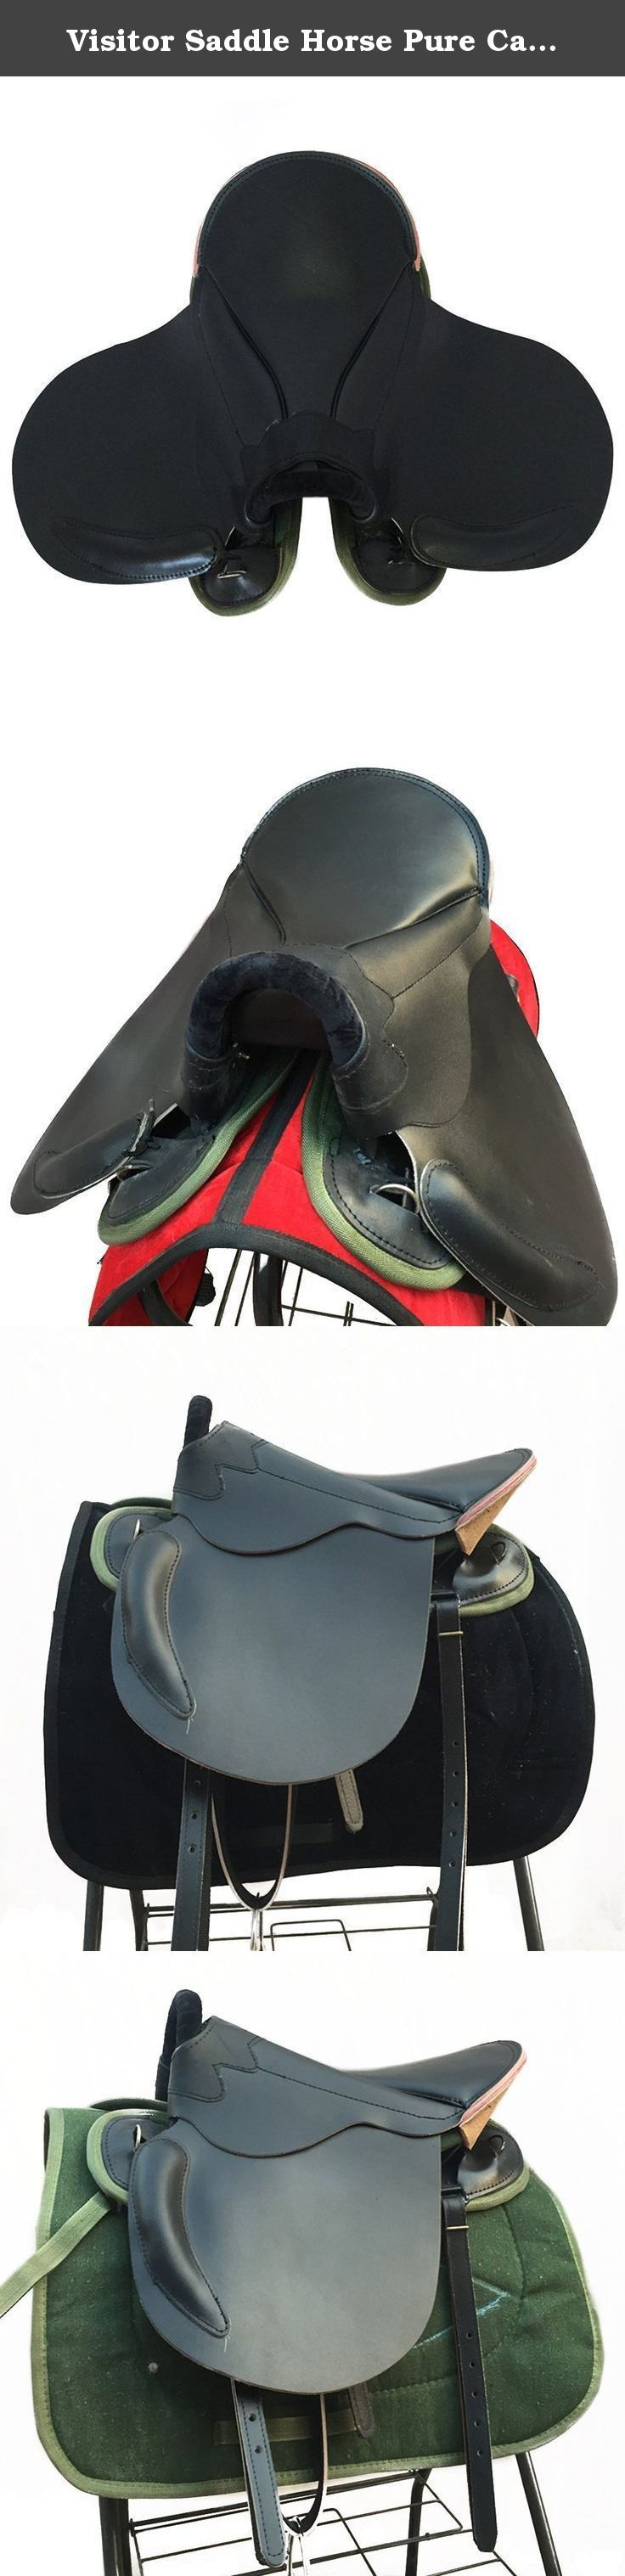 Visitor Saddle Horse Pure Cattle Leather Equestrian Supplies small. Features: High cost performance Manual made of cattle leather Improved from old army saddle Comfortable riding Keep away from wet environment and blazing sun Specifications: Color:black Size:big 46cm,small 38cm Suitable to:small horses of normal stature with 1-1.2m shoulder big horses of normal stature with over 1.2m shoulder Weight:small 7kg,big 8kg .